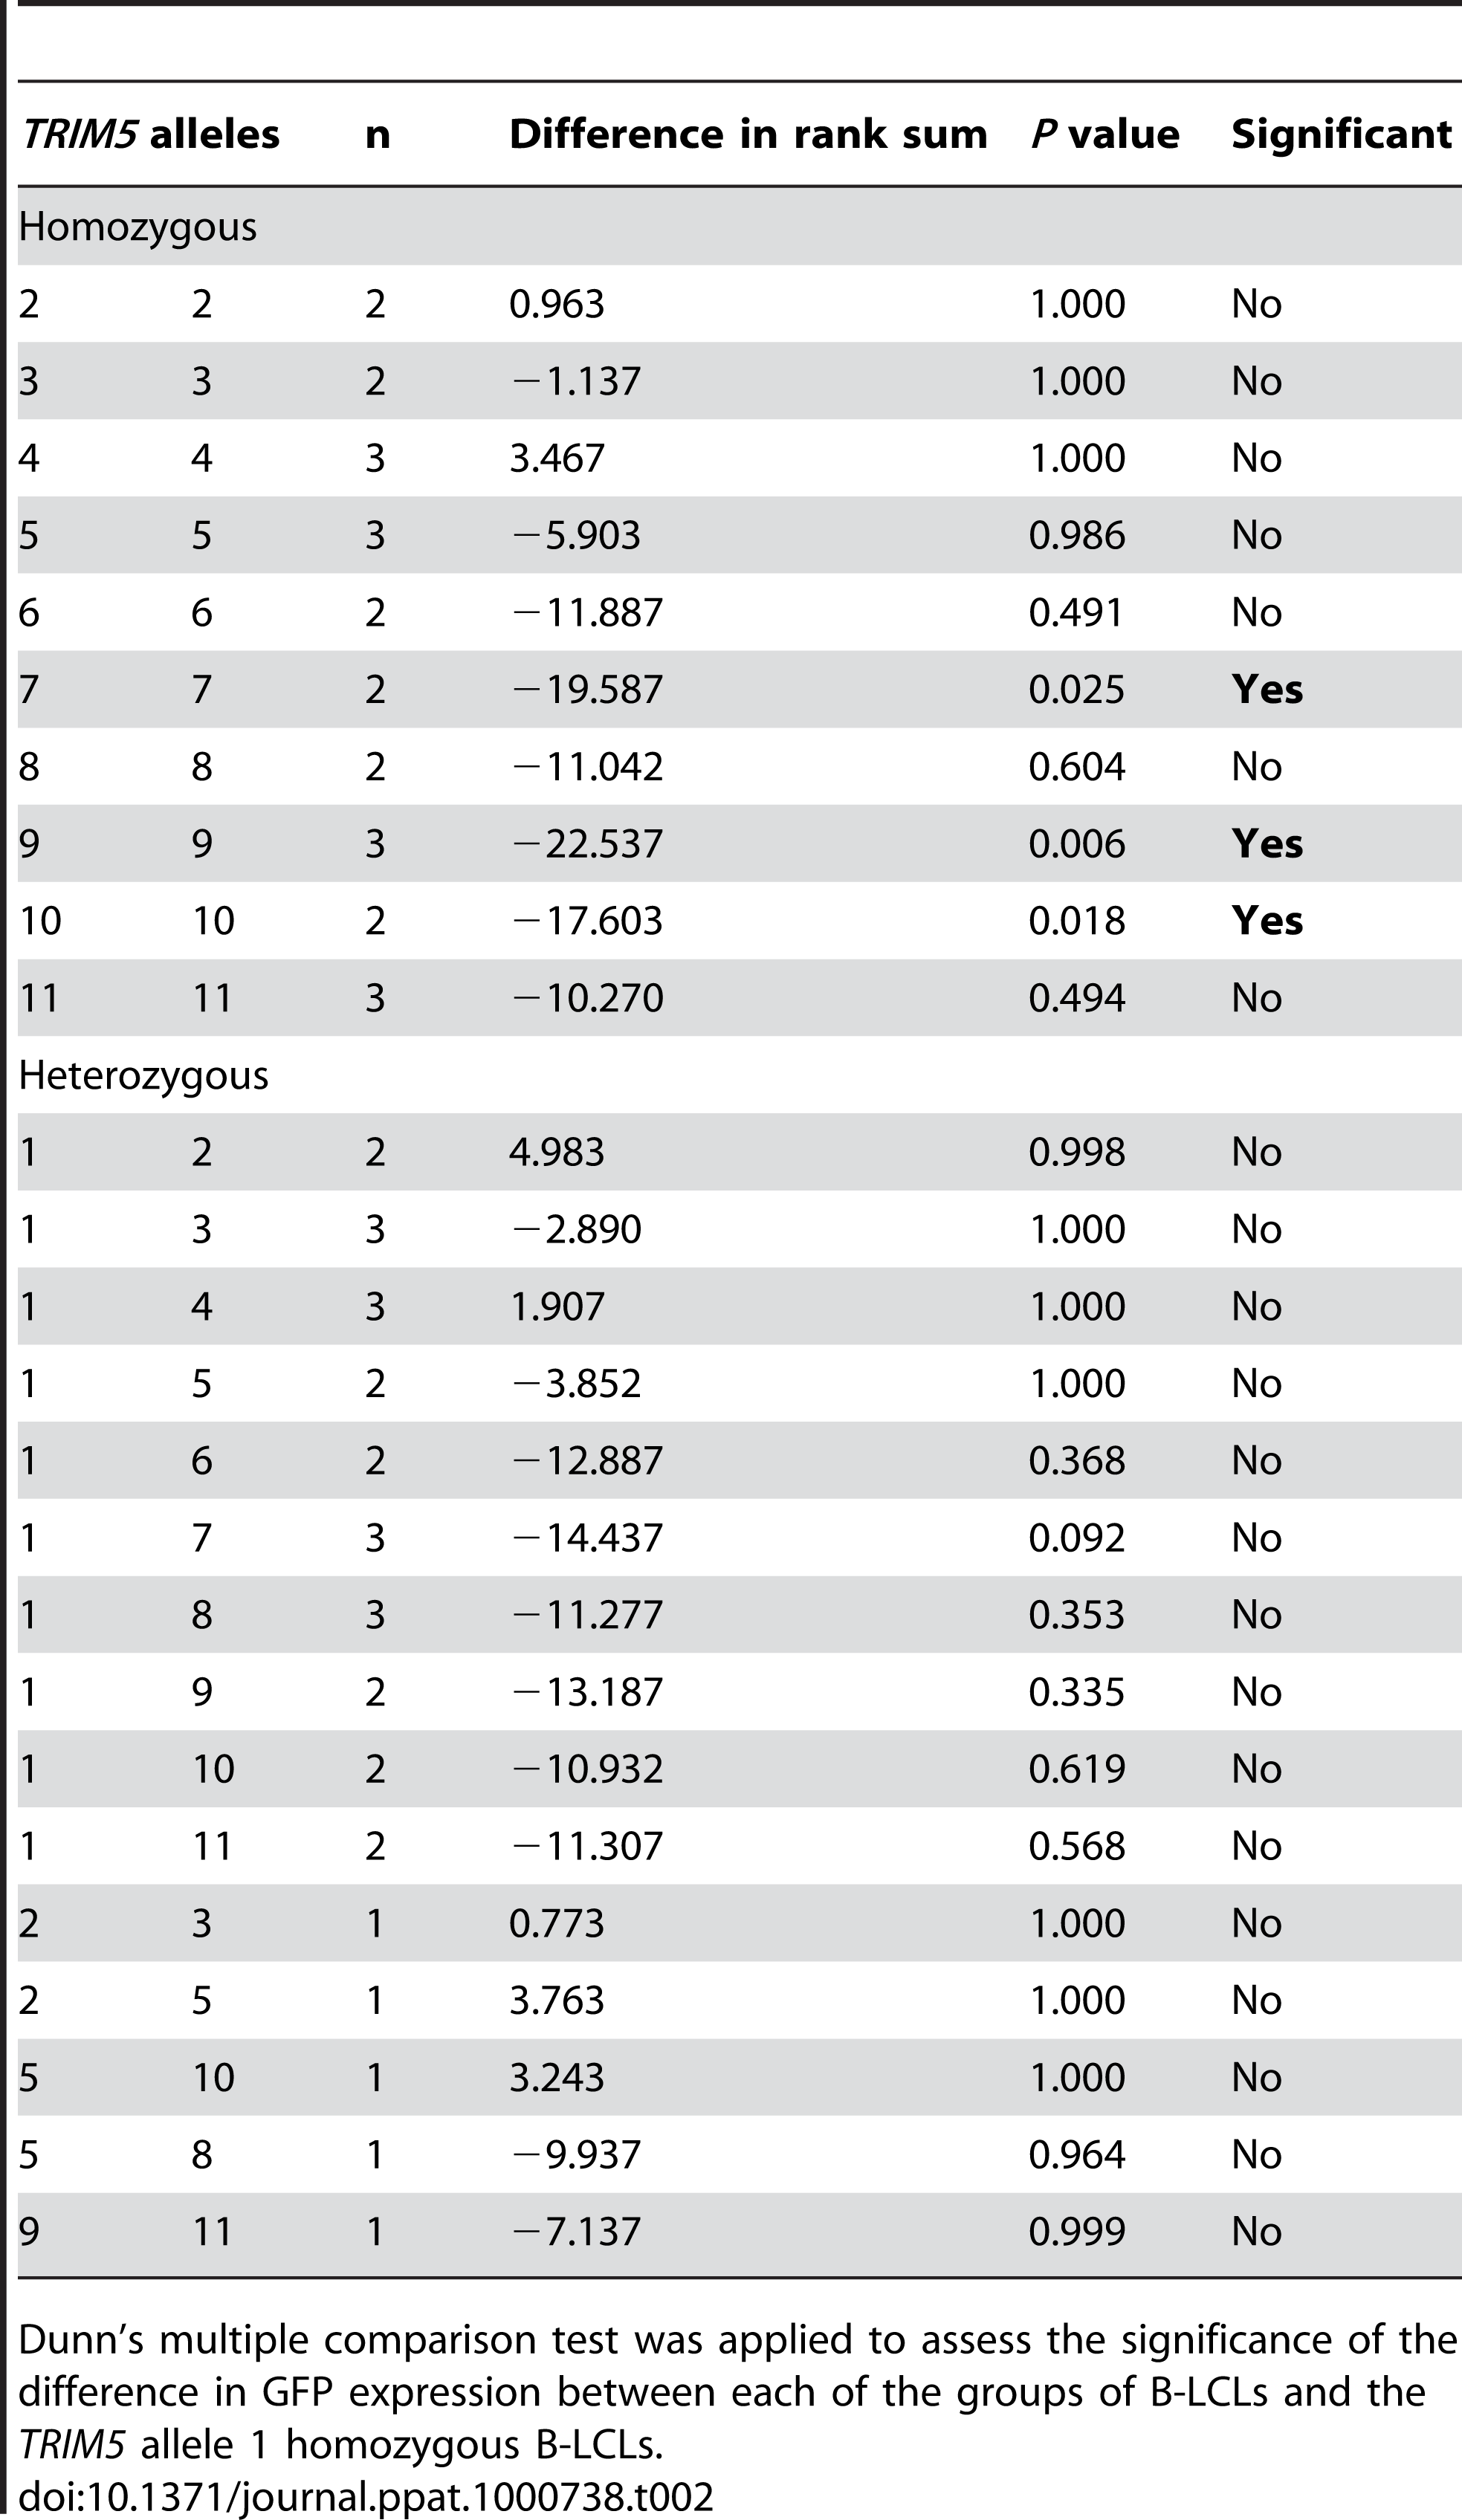 Comparison of the % GFP values from rhesus monkey B-LCLs expressing various combinations of <i>TRIM5</i> alleles with a control group of B-LCLs expressing only the <i>TRIM5</i> allele 1.